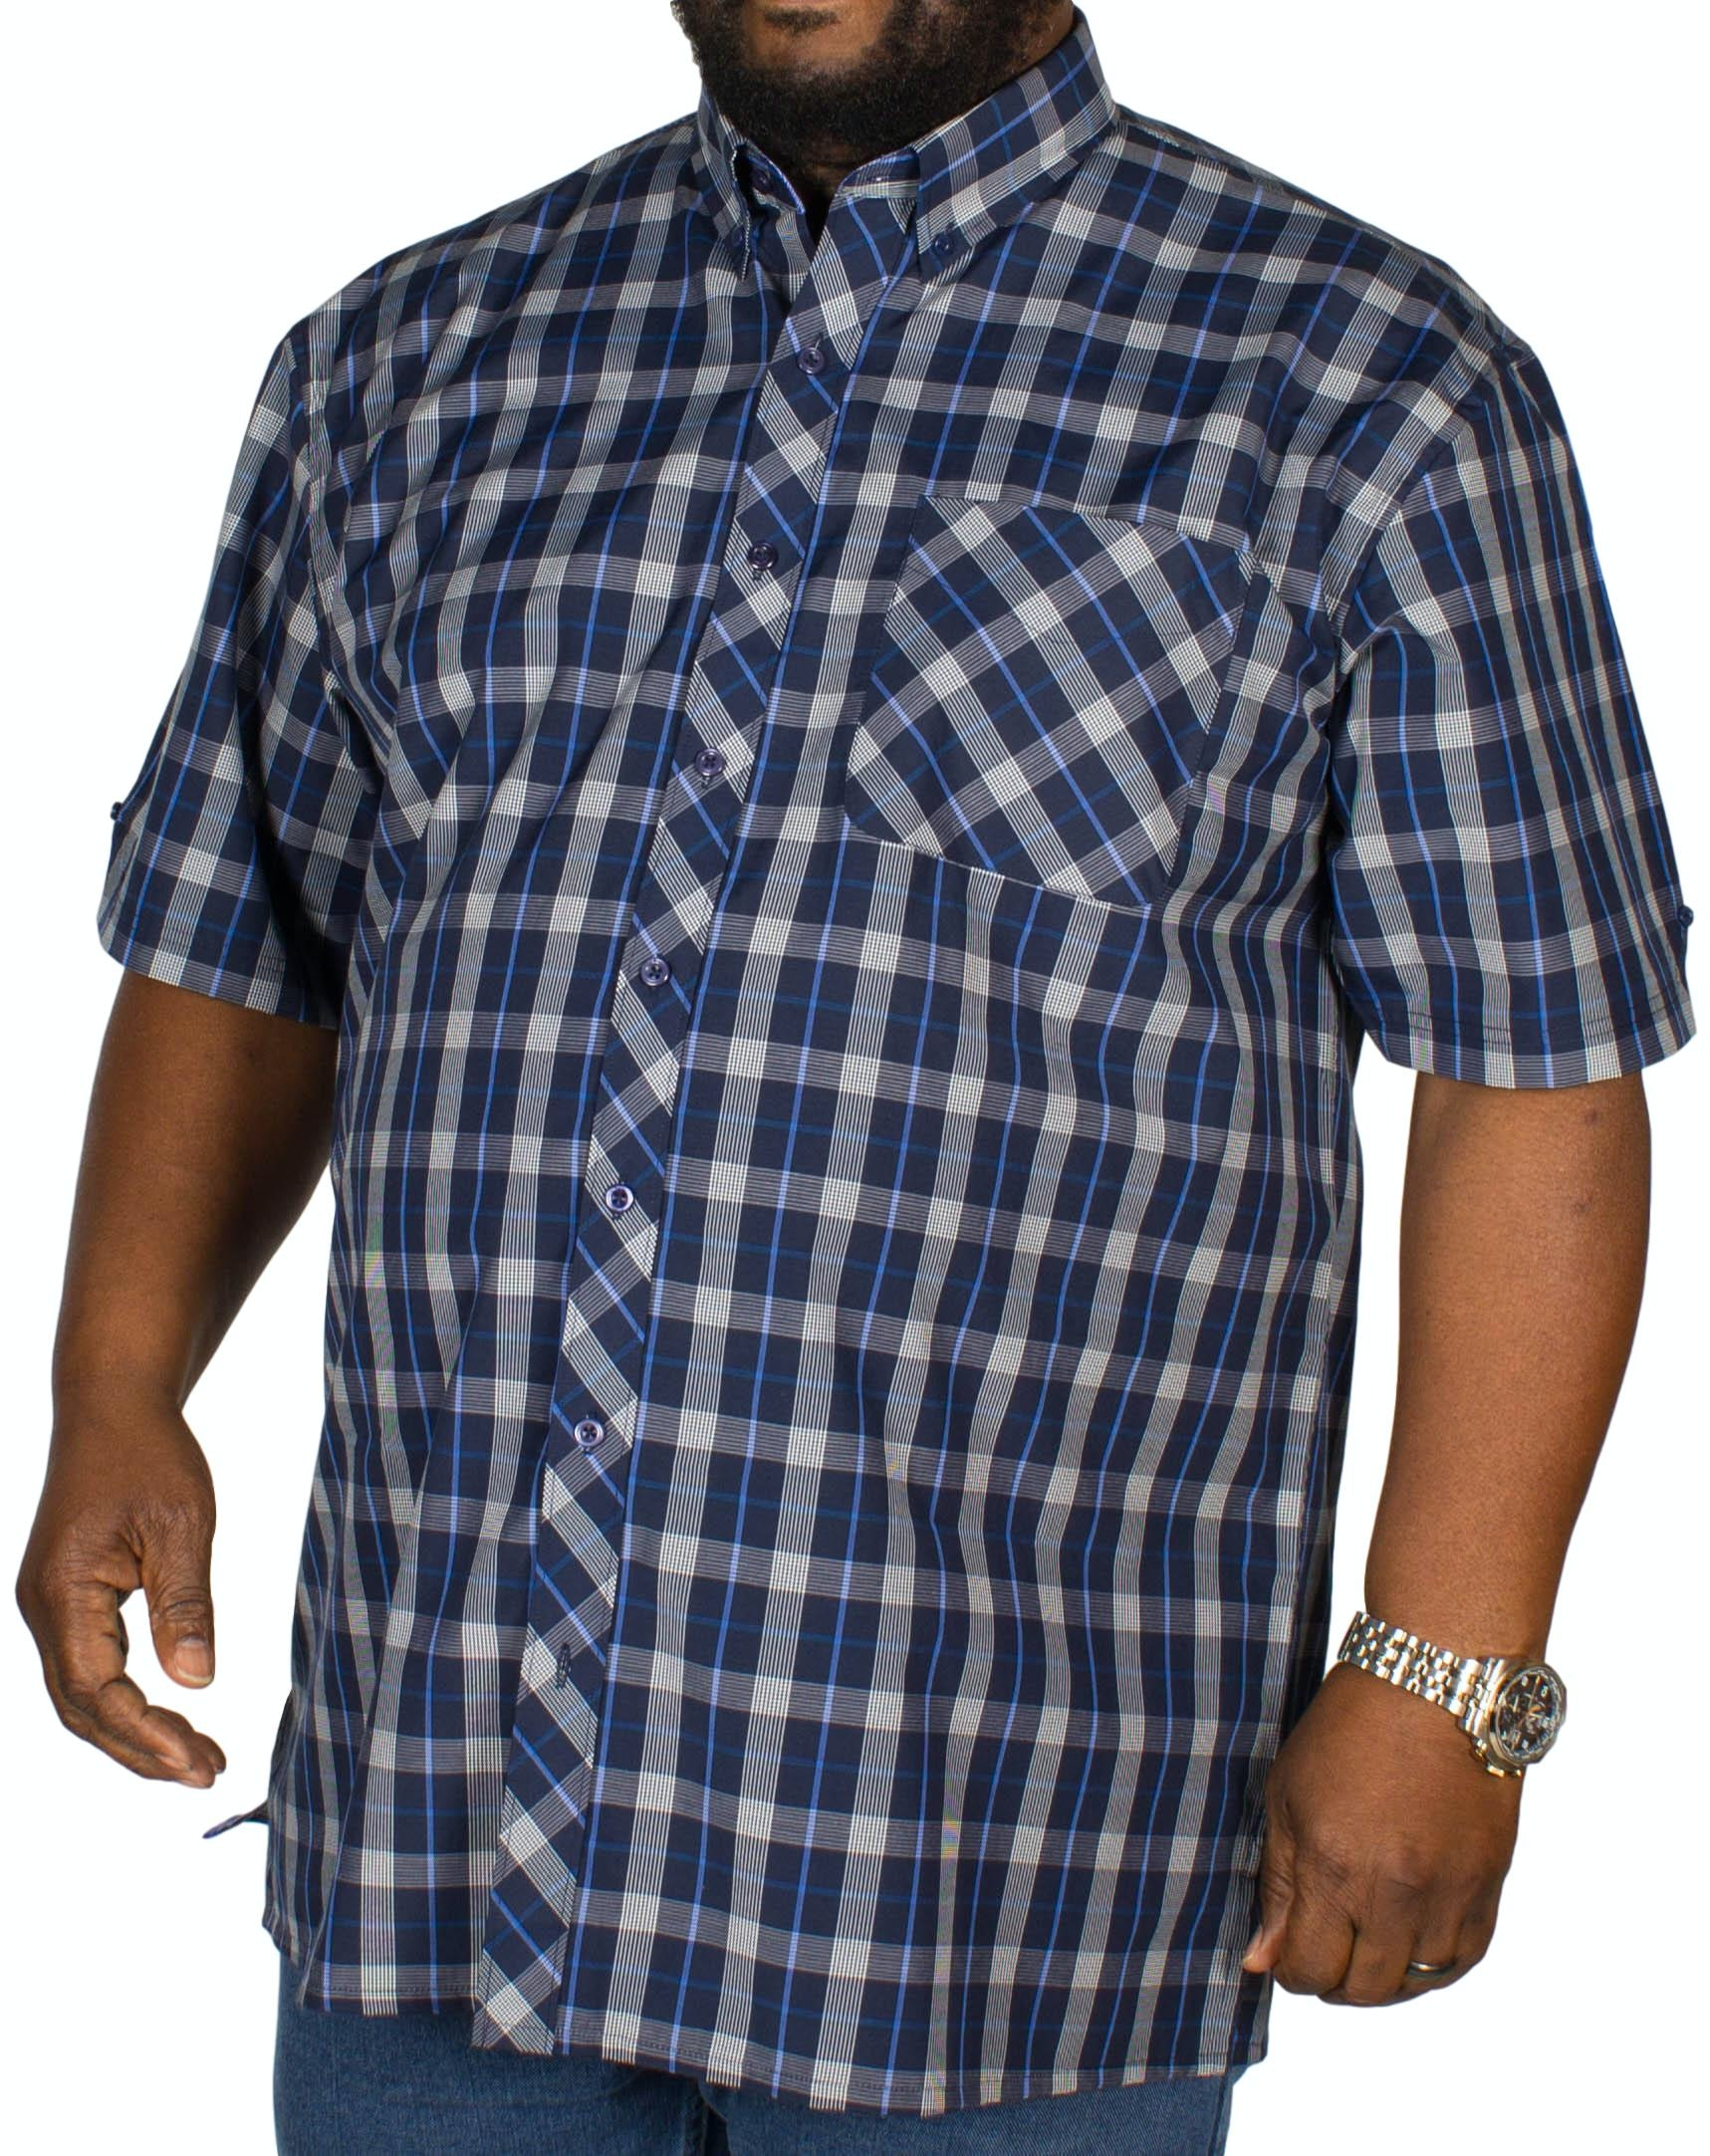 Espionage Check Short Sleeve Shirt Navy/Blue/White